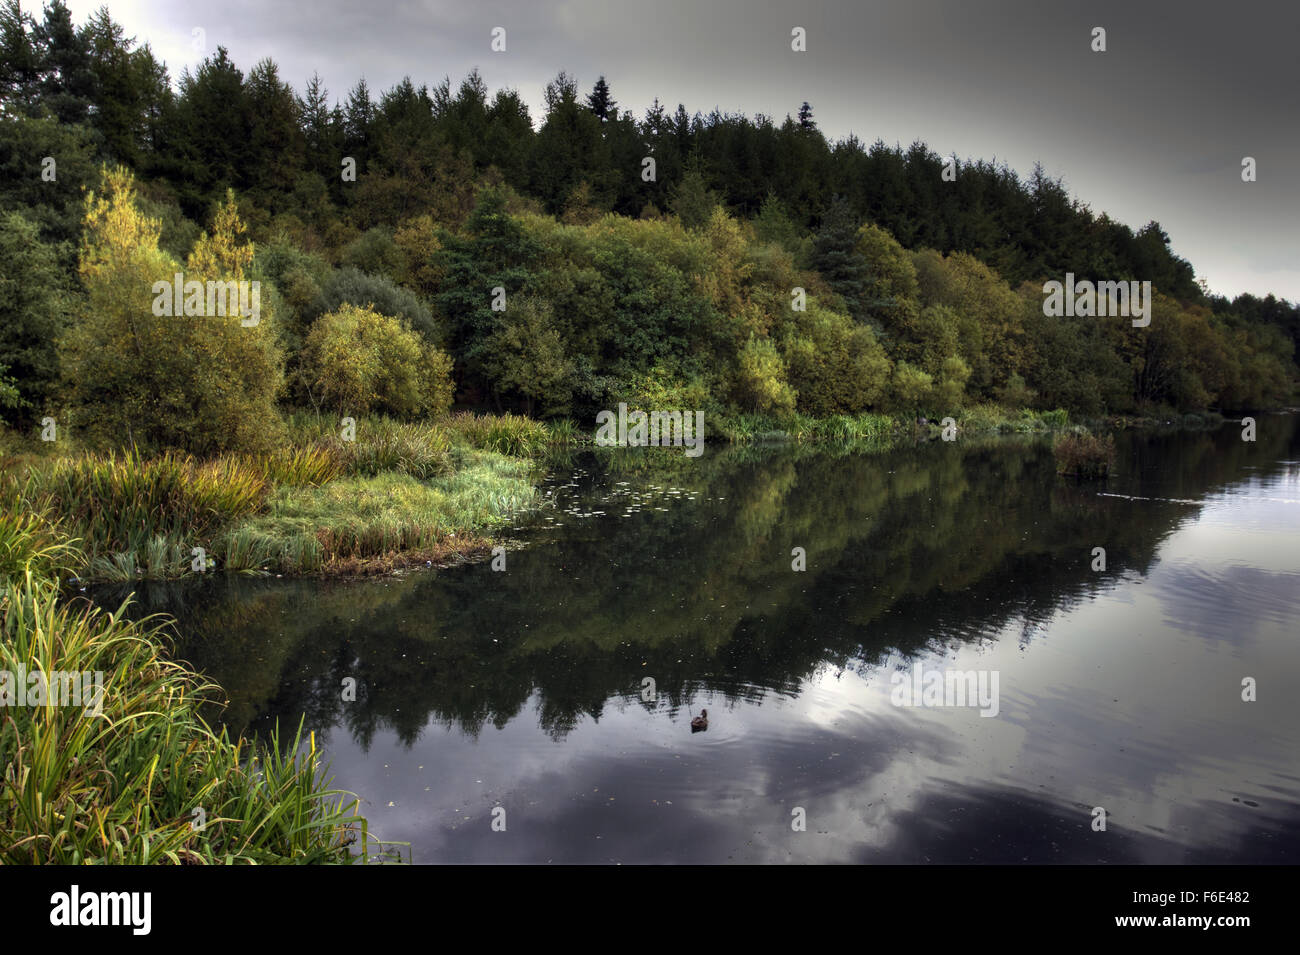 Deans (AKA Eliburn) Reservoir is a beautiful stretch of water. - Stock Image